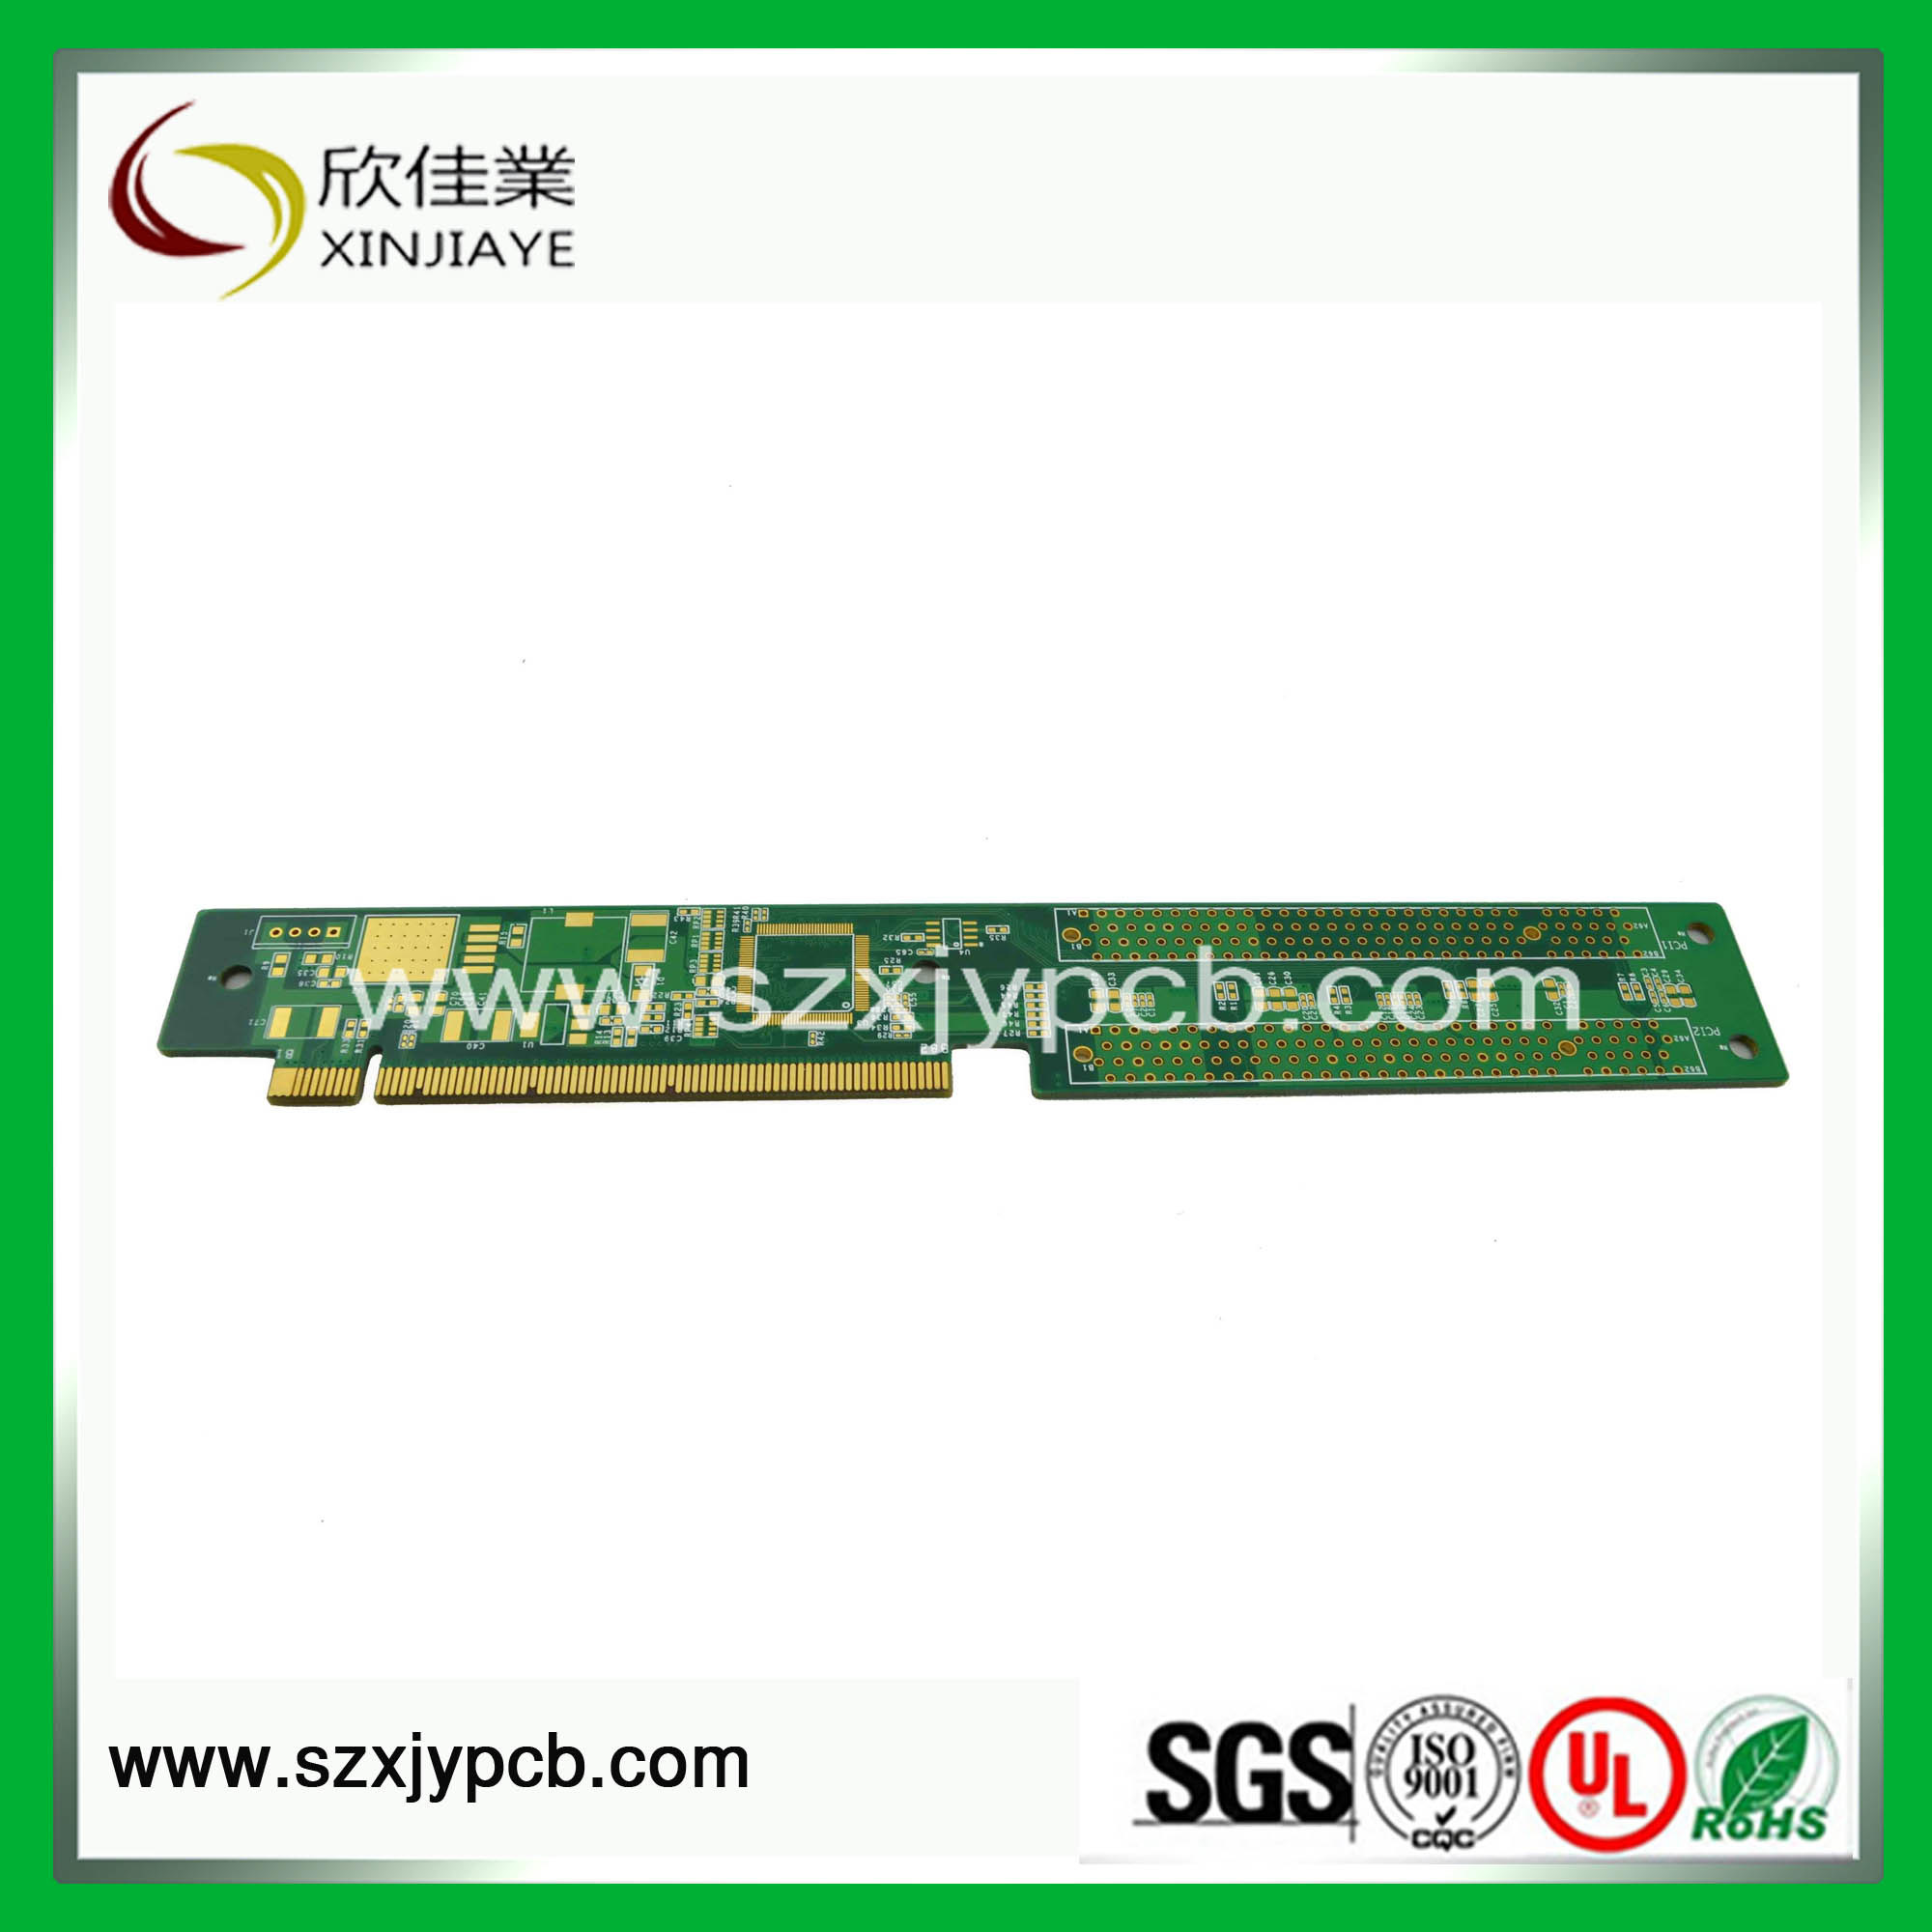 Chinese Xvideo Audio And Video Player Pcba For Oem China Multilayer Pcb Manufacturer Ul Rohs Ourpcb Prototype